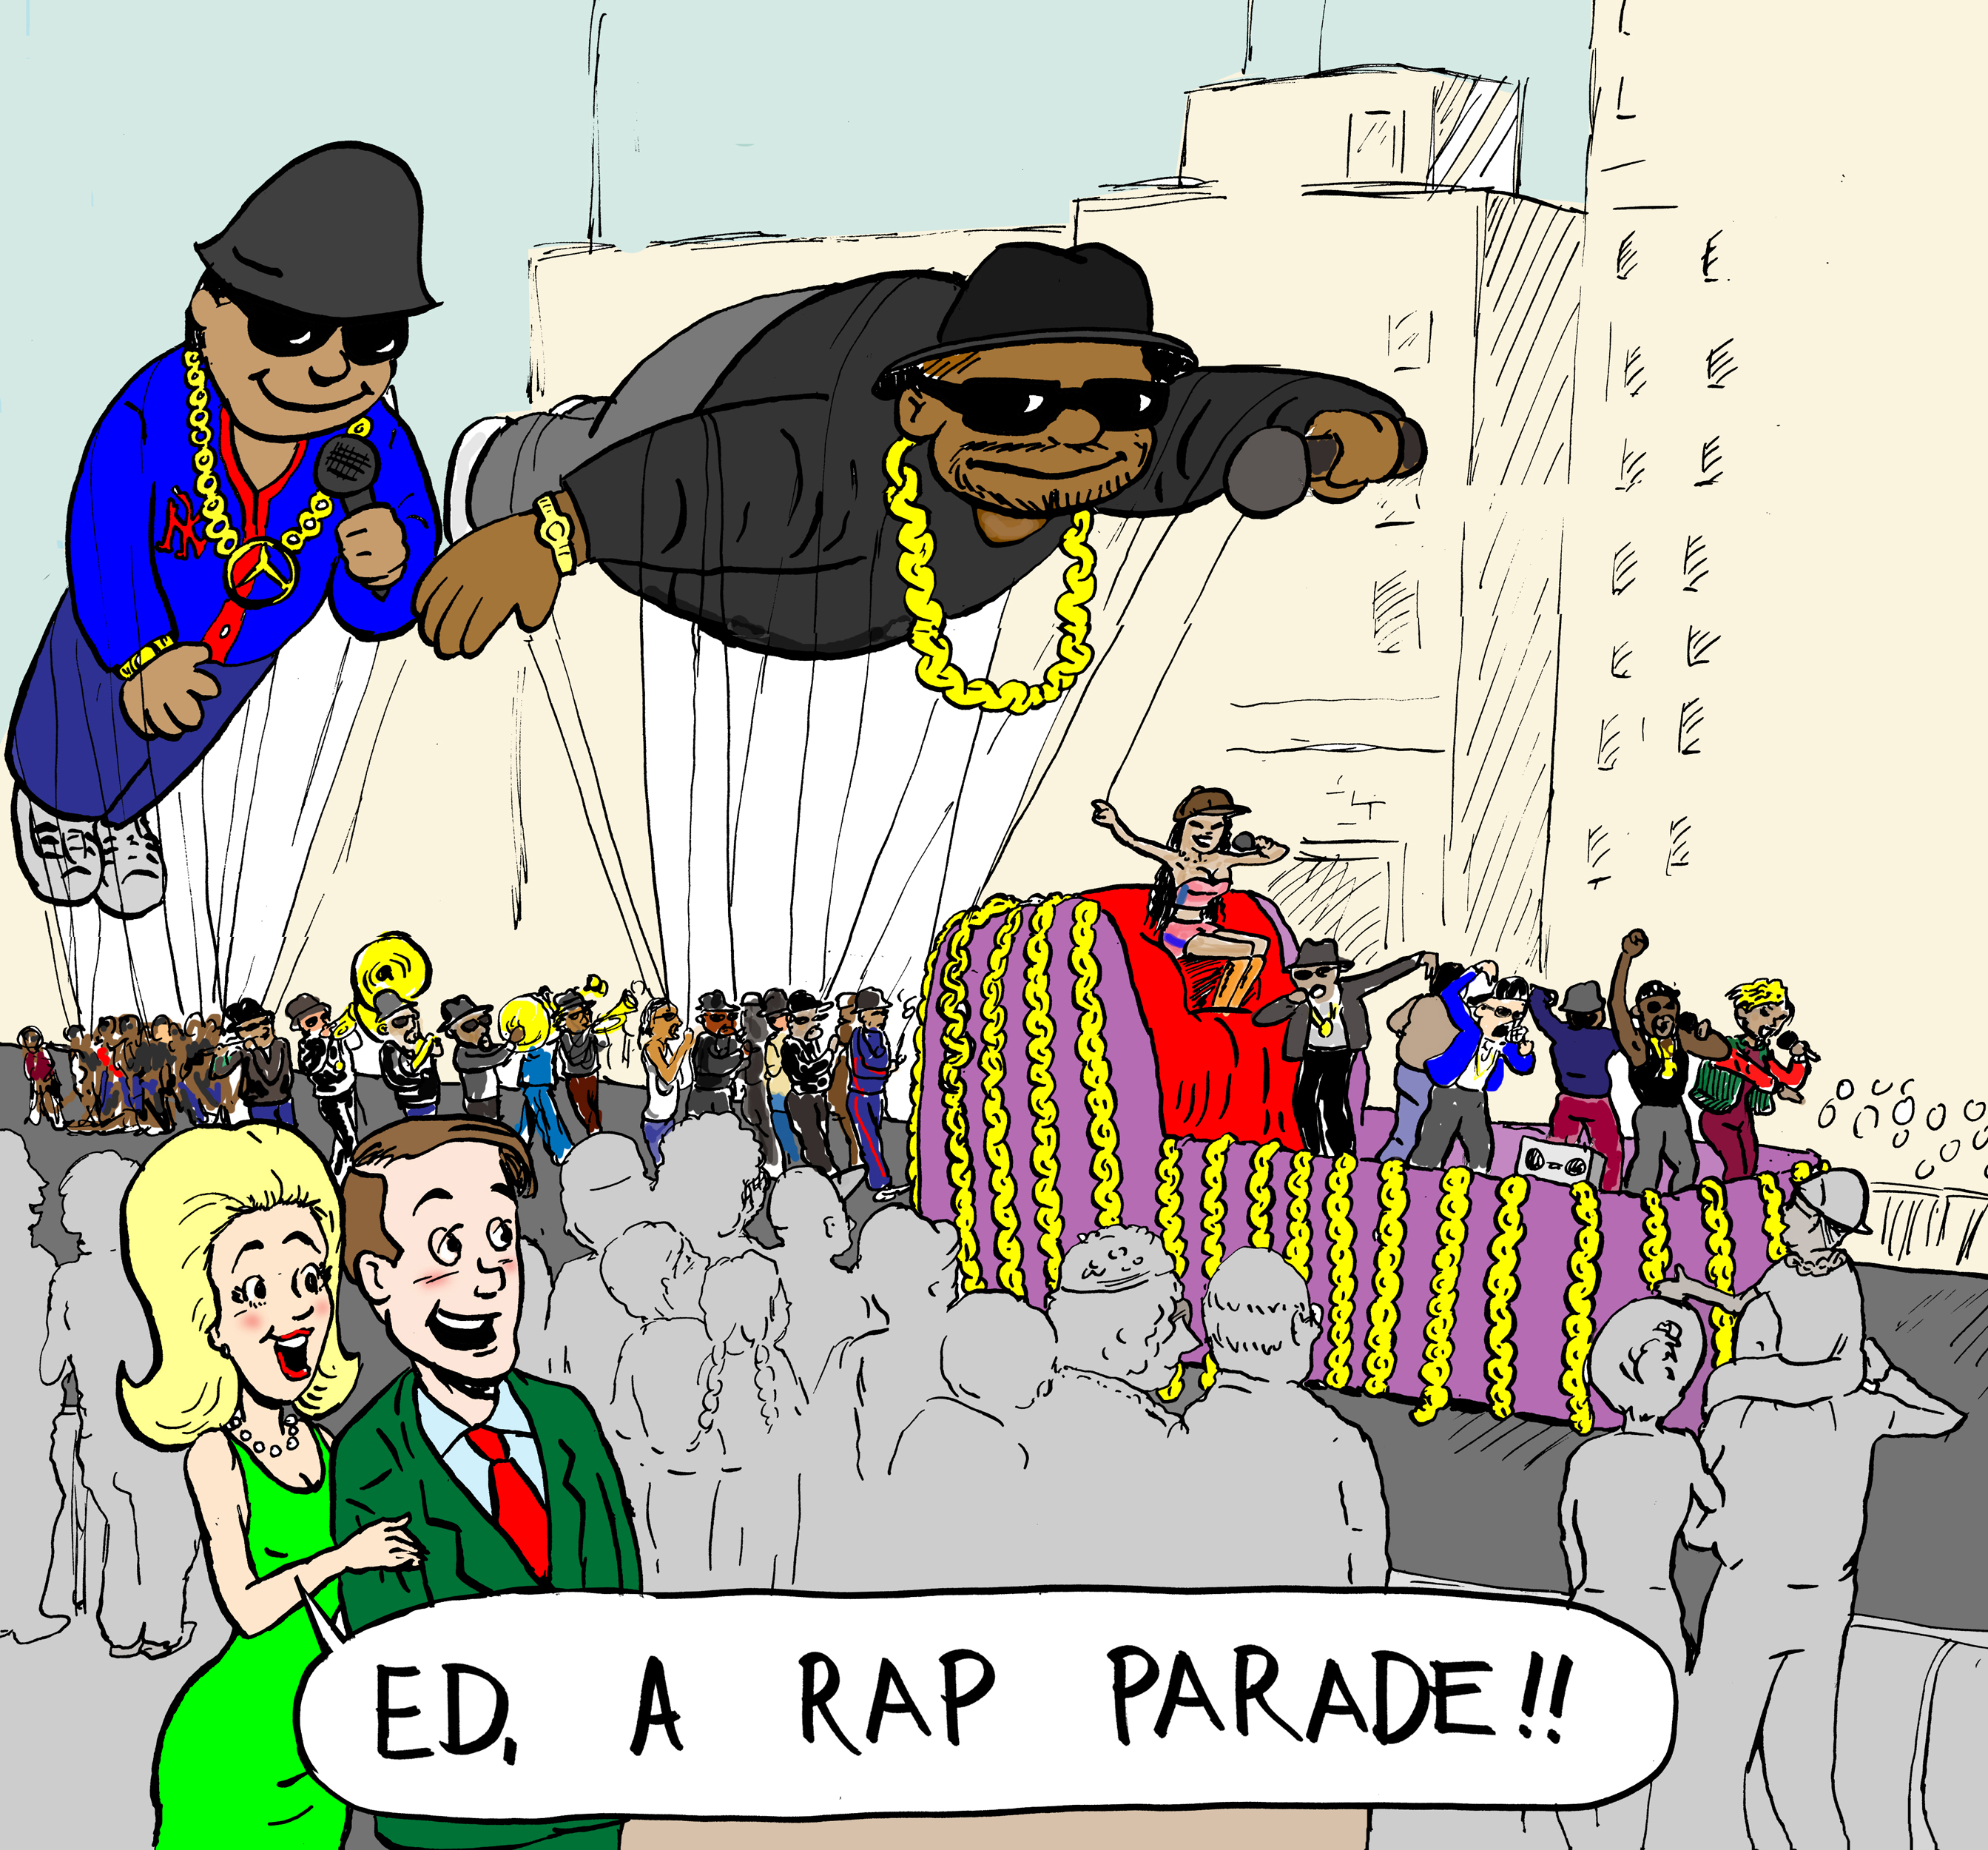 rap parade - reduced